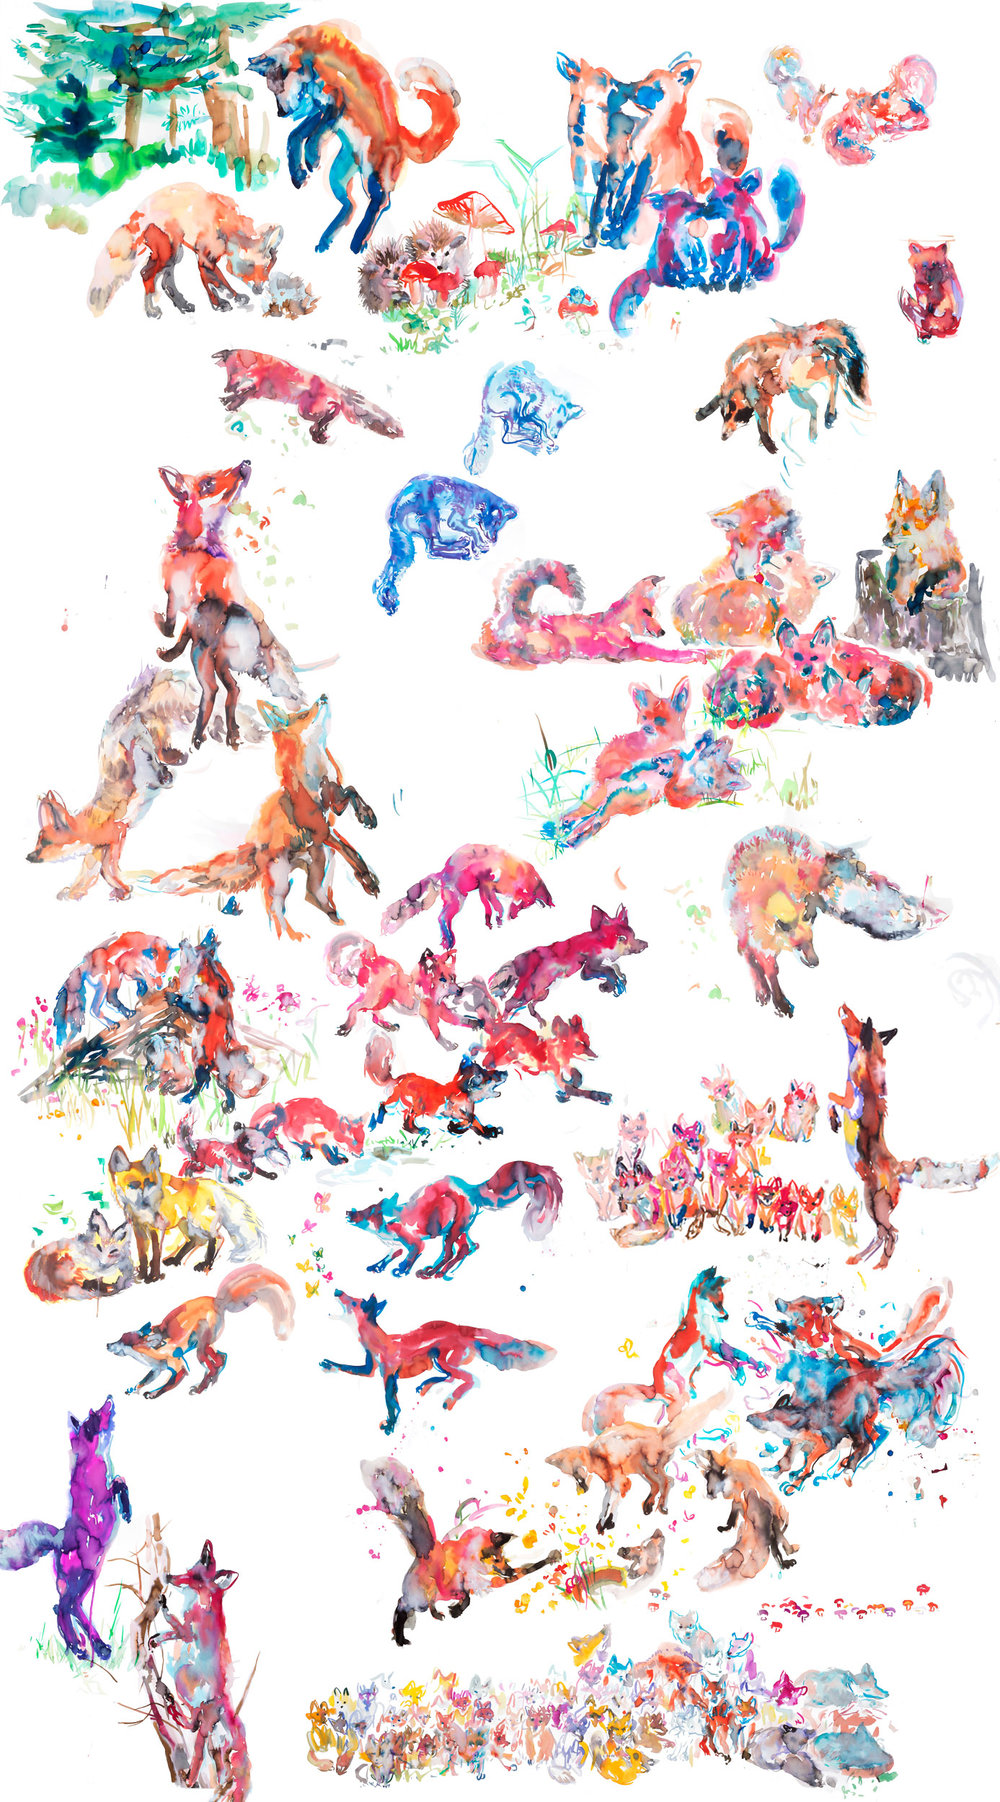 Foxes Mural - ARTWORK DETAILS:Fine Art print of original watercolor painting.Limited editionWidth: 111 cm (approx 44